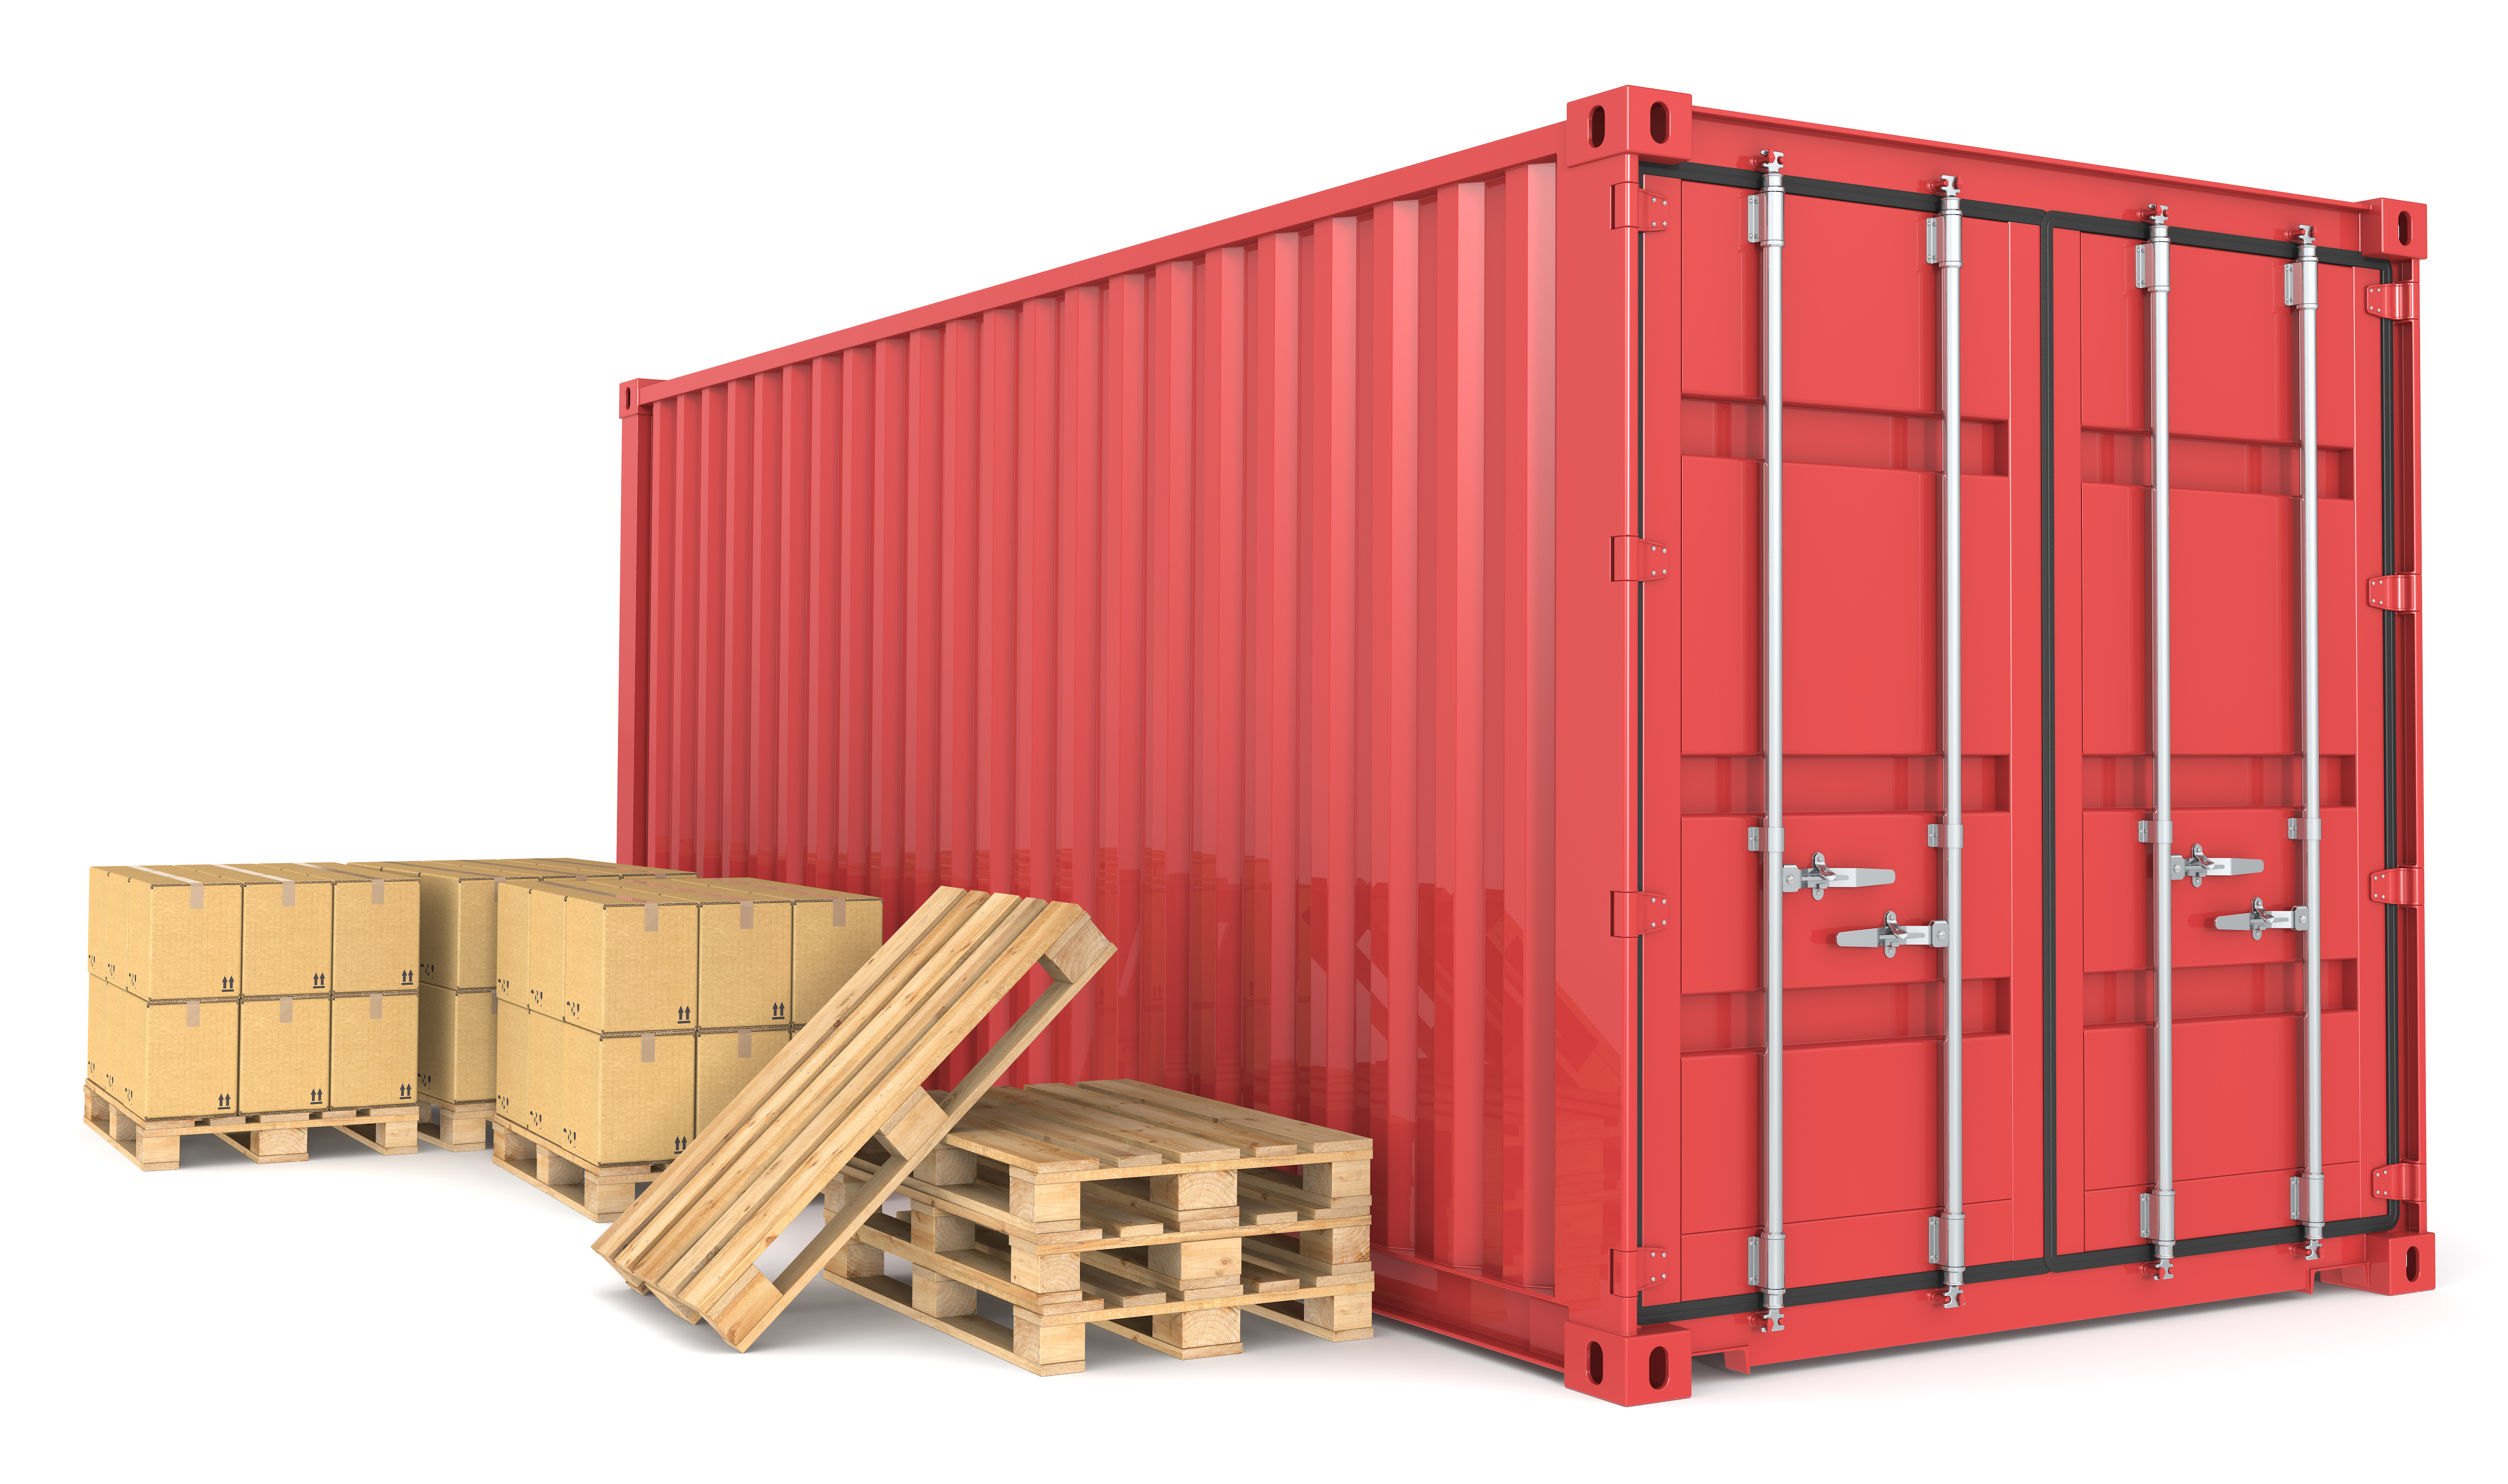 Shipping Container How Many Pallets Fit In A Shipping Container John Good Shipping